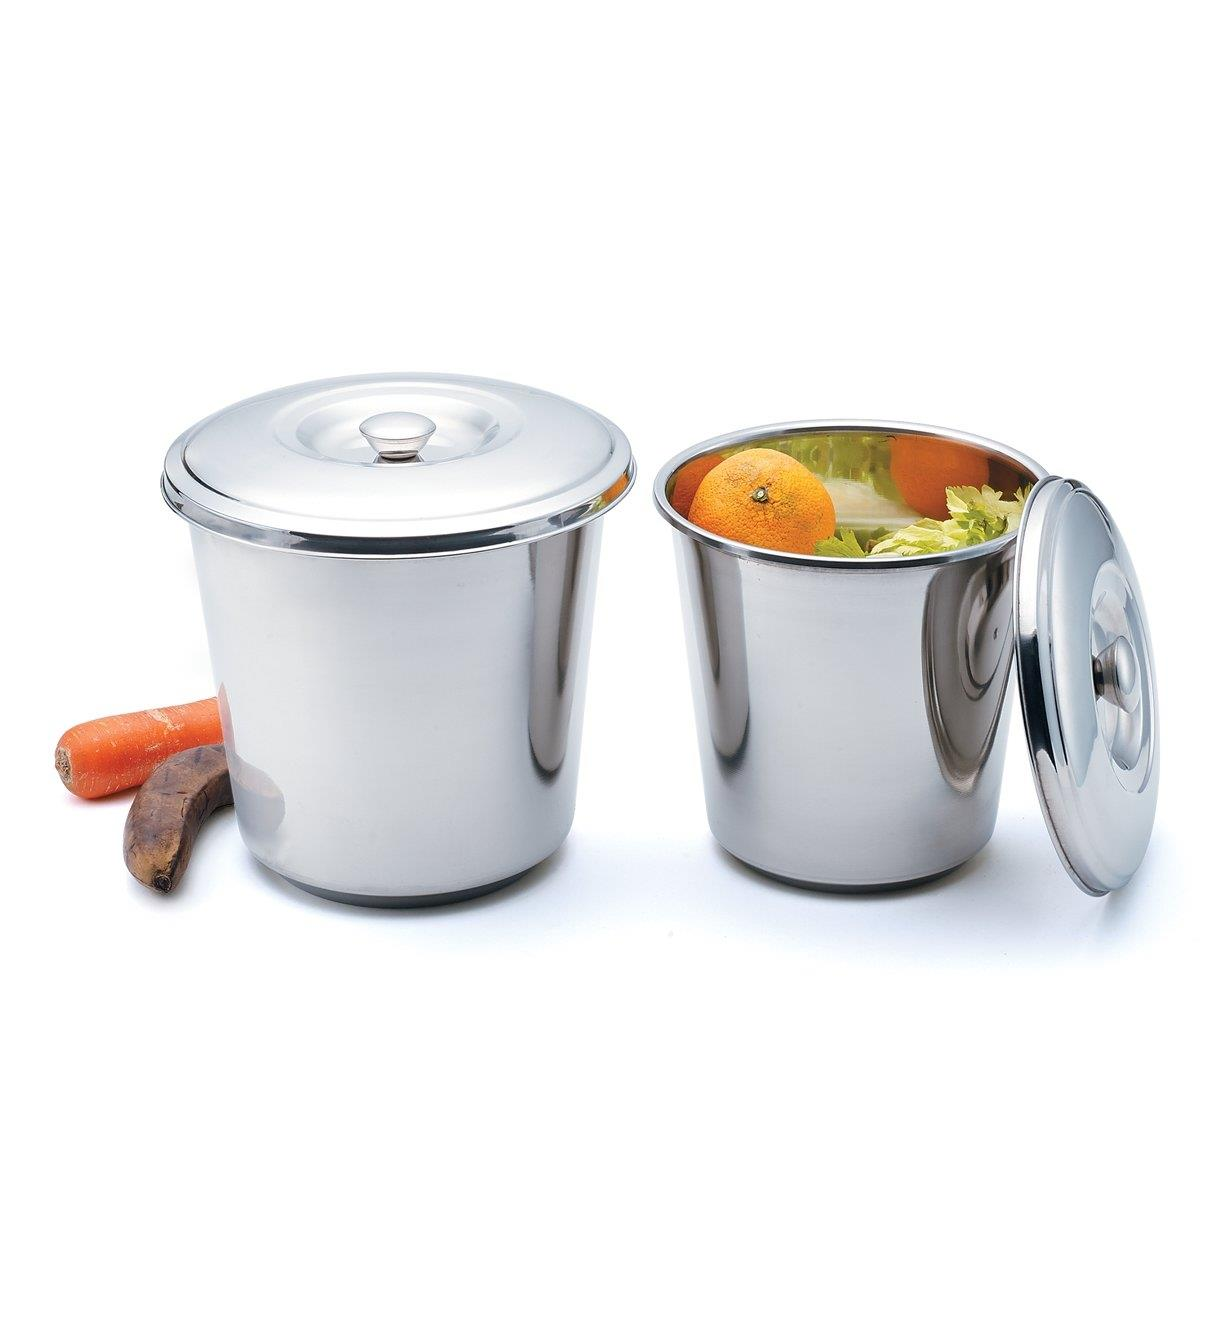 Both sizes of Compost Pails side by side, the smaller pail filled with food scraps